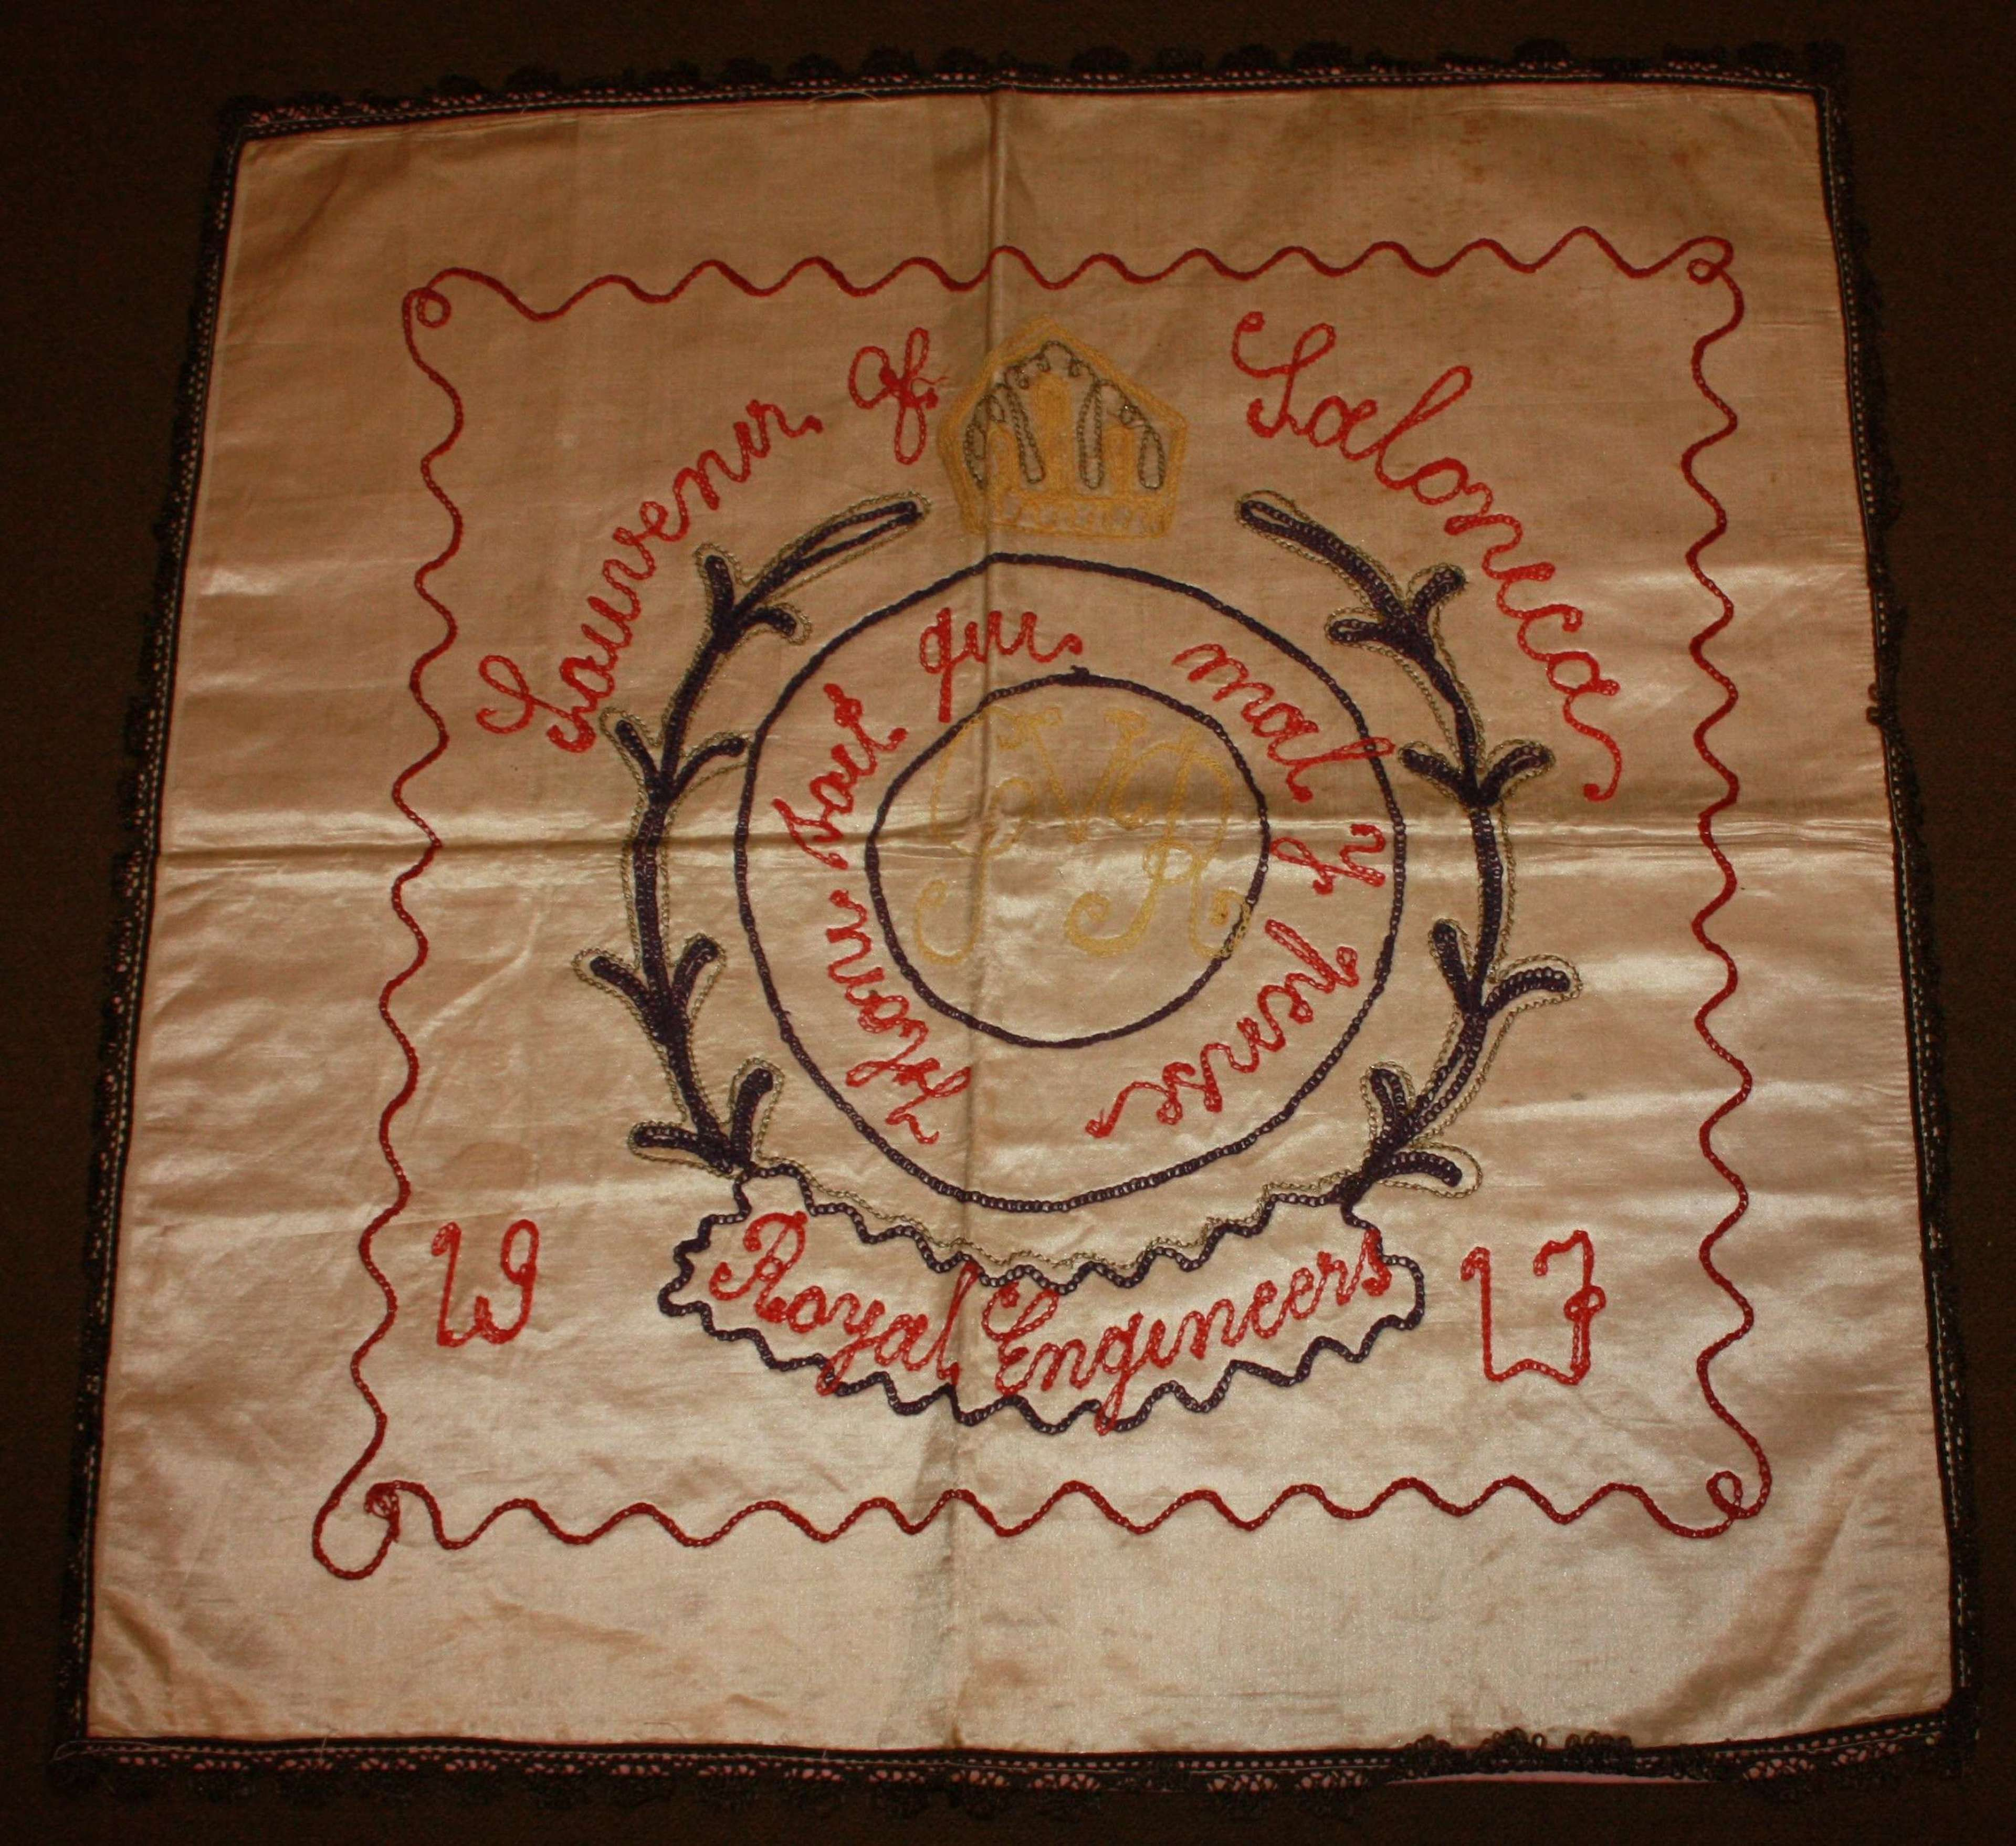 A WWI ROYAL ENGINEERS PILOW CASE